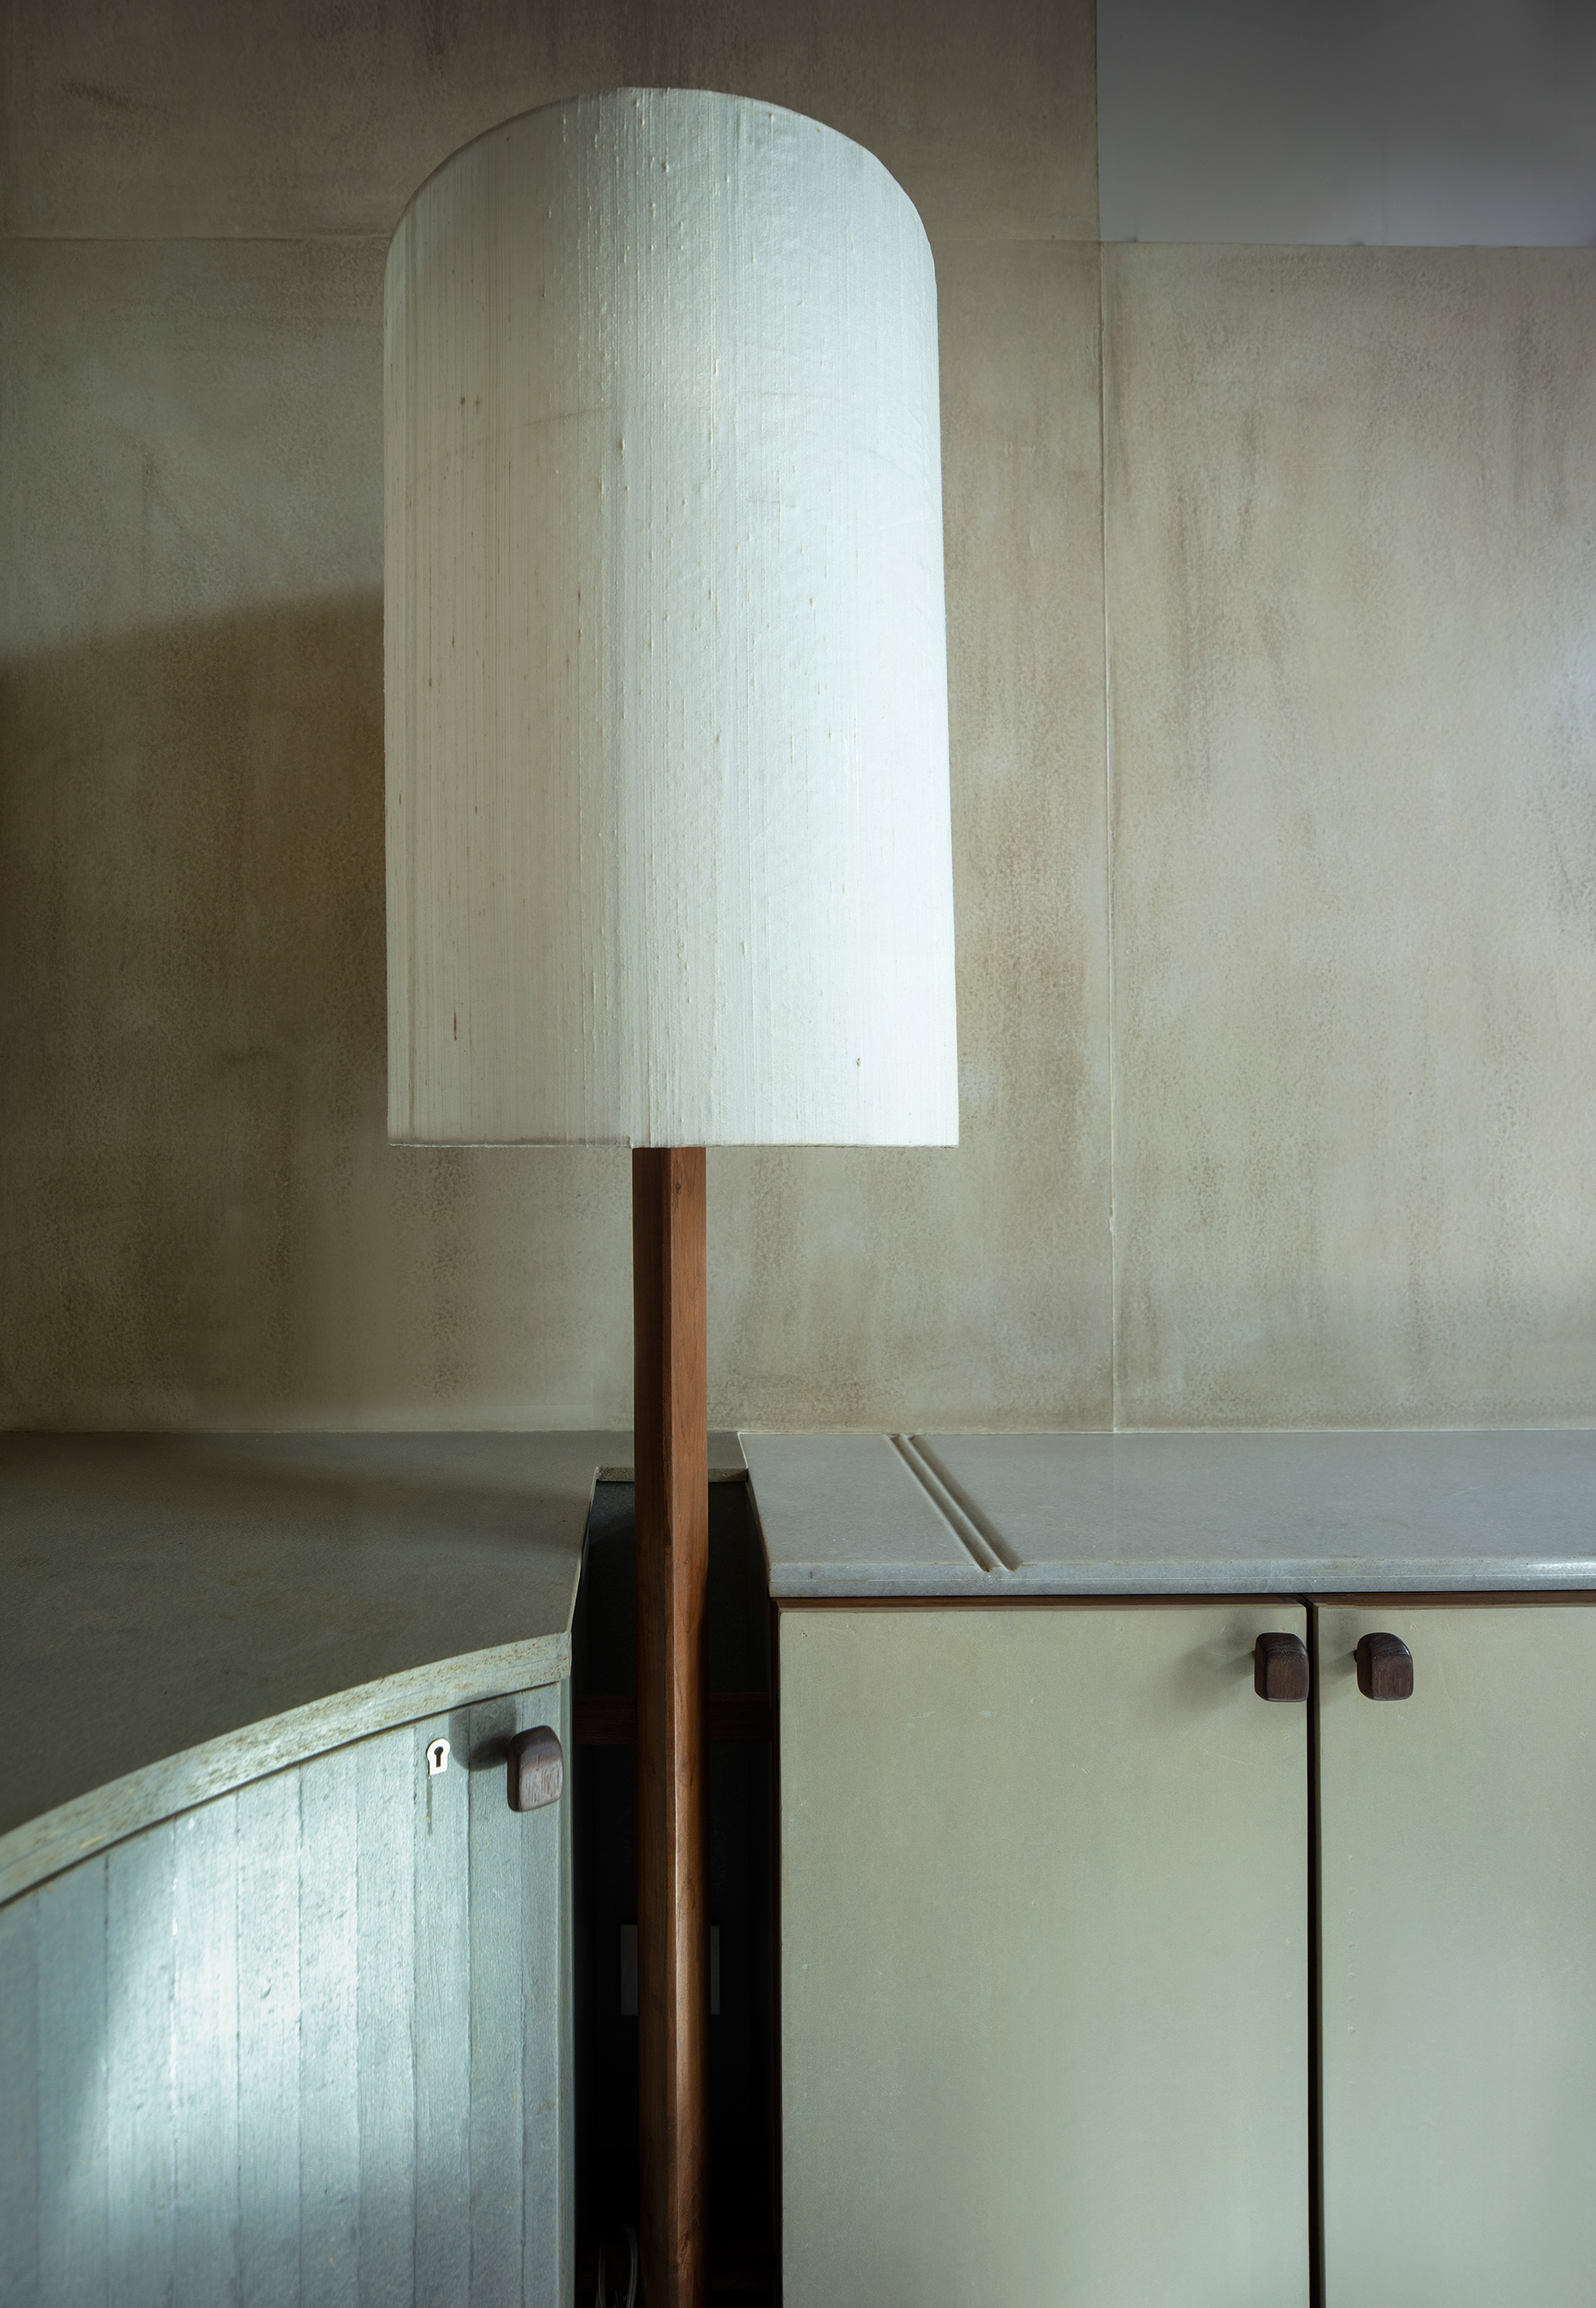 A lamp by Big Piano | Samira Rathod Design Atelier | Mumbai | STIRworld